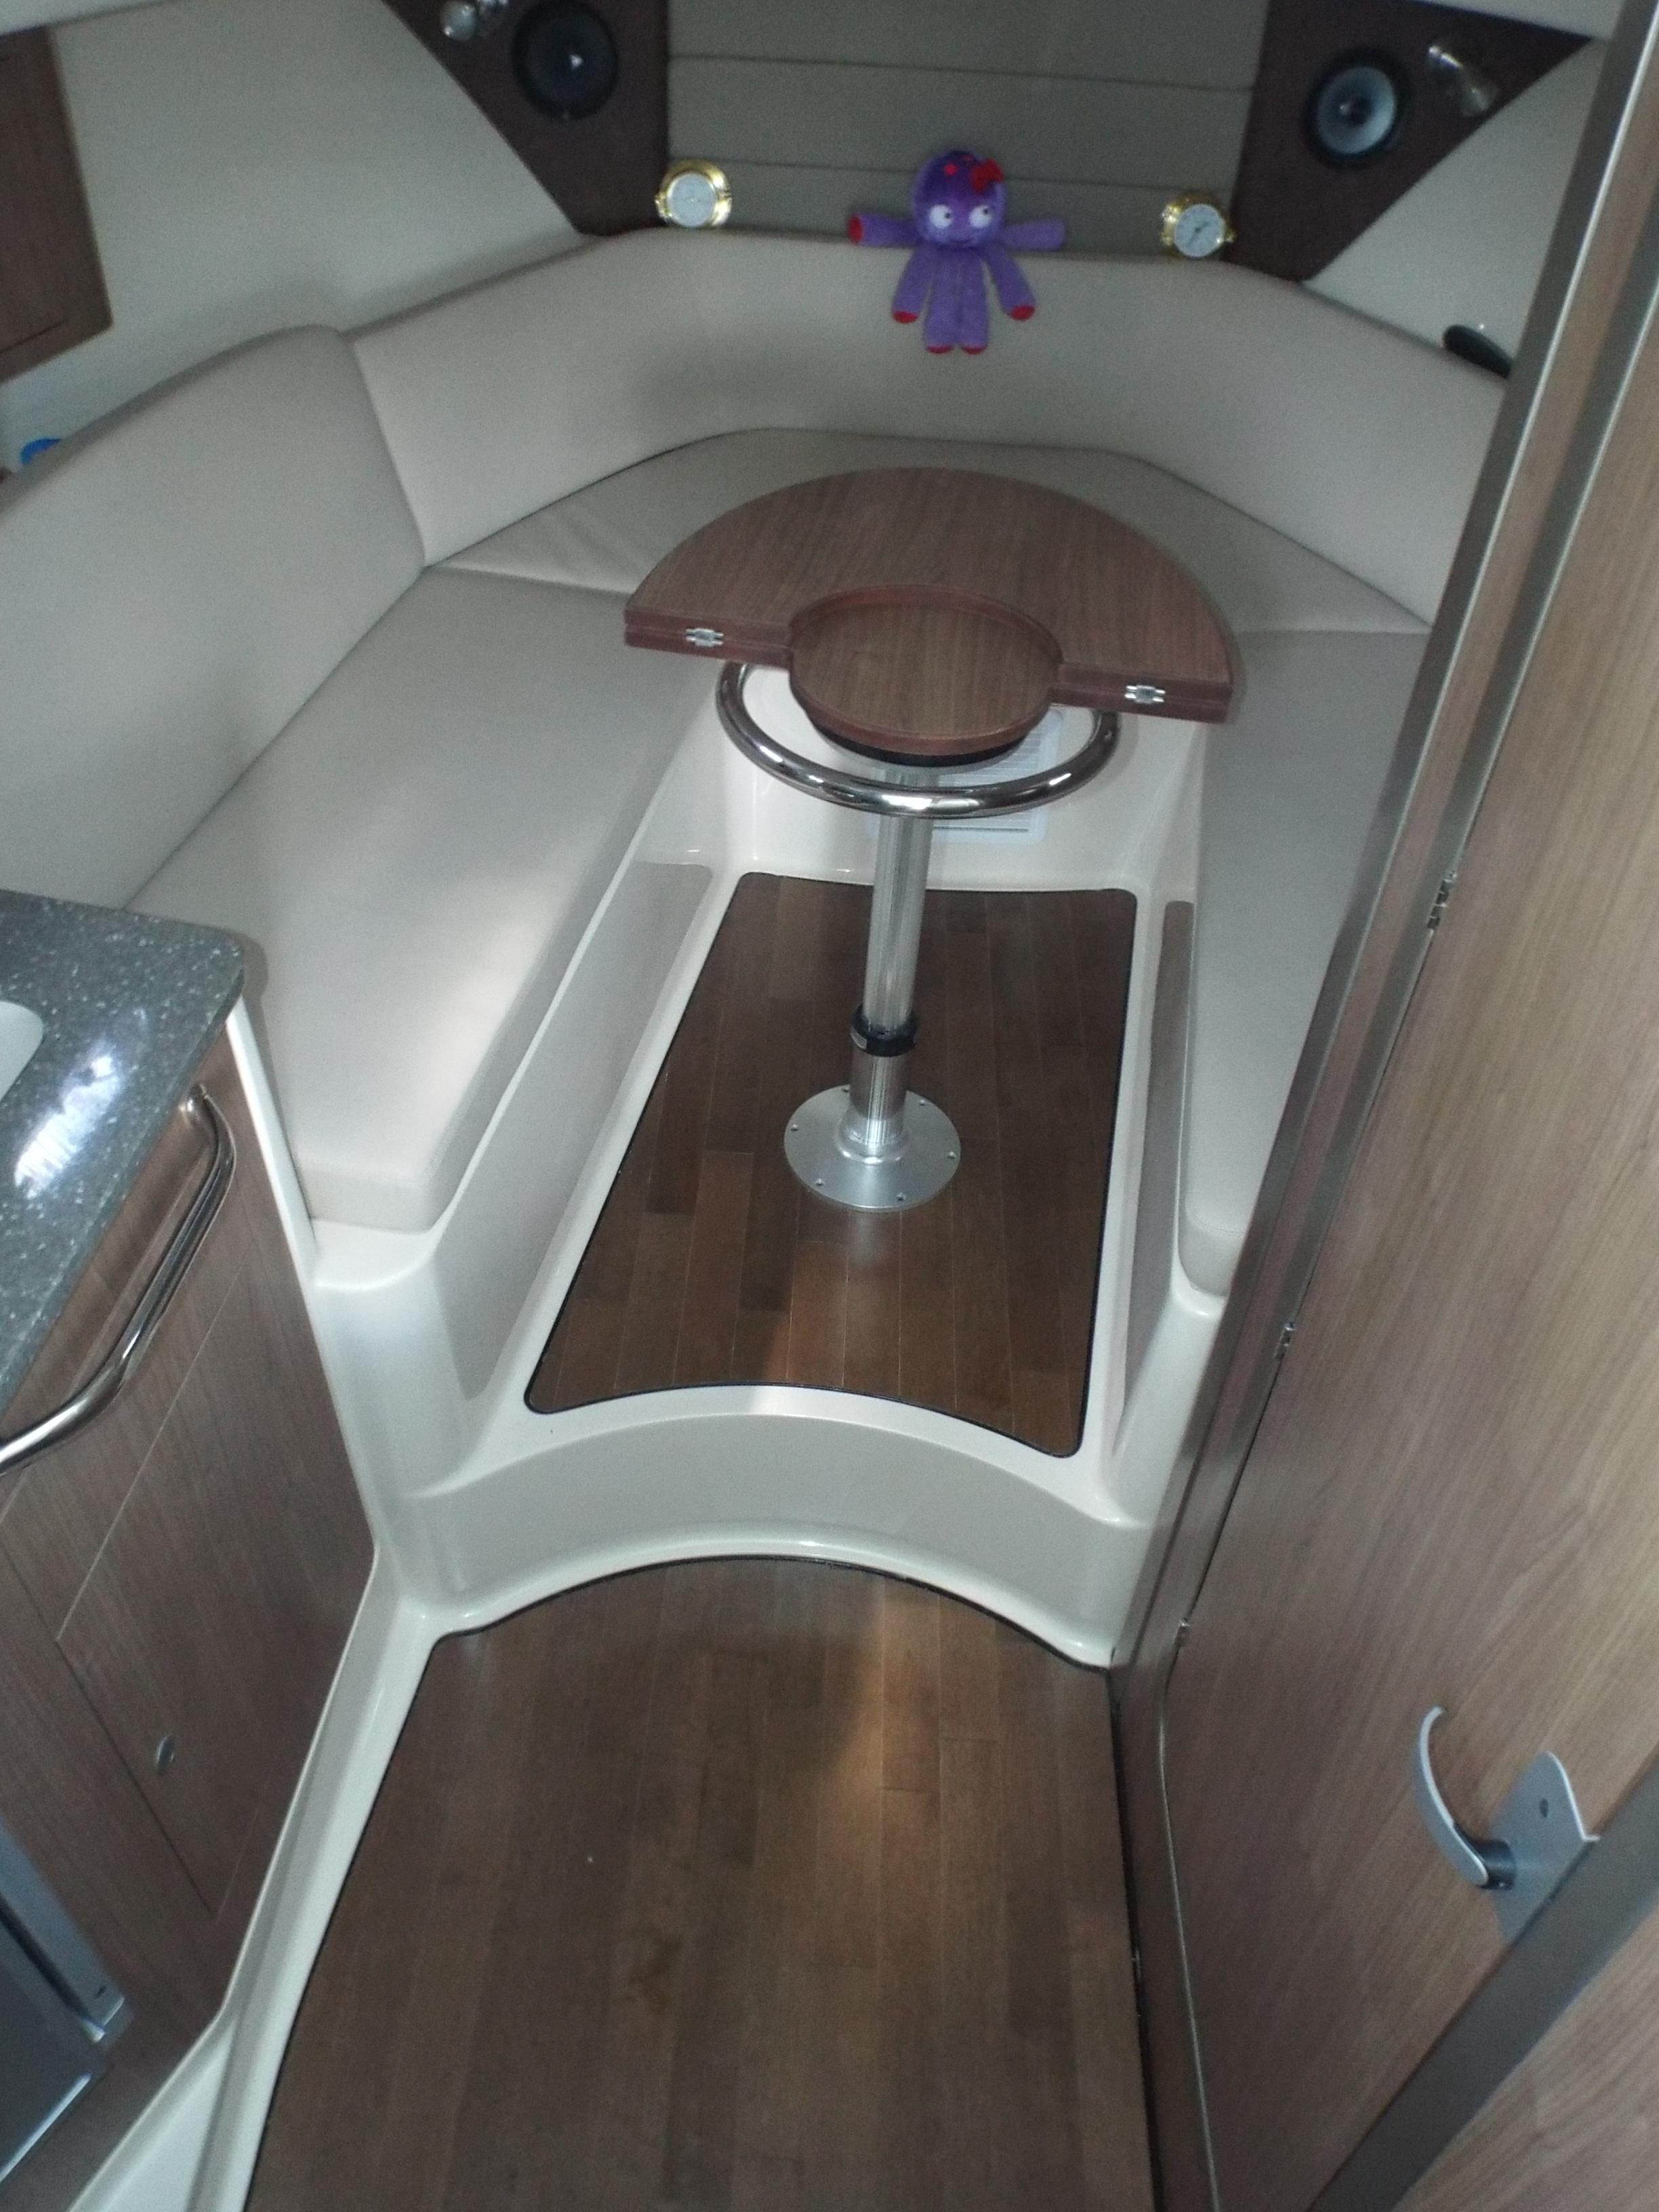 Cabin View from Companionway